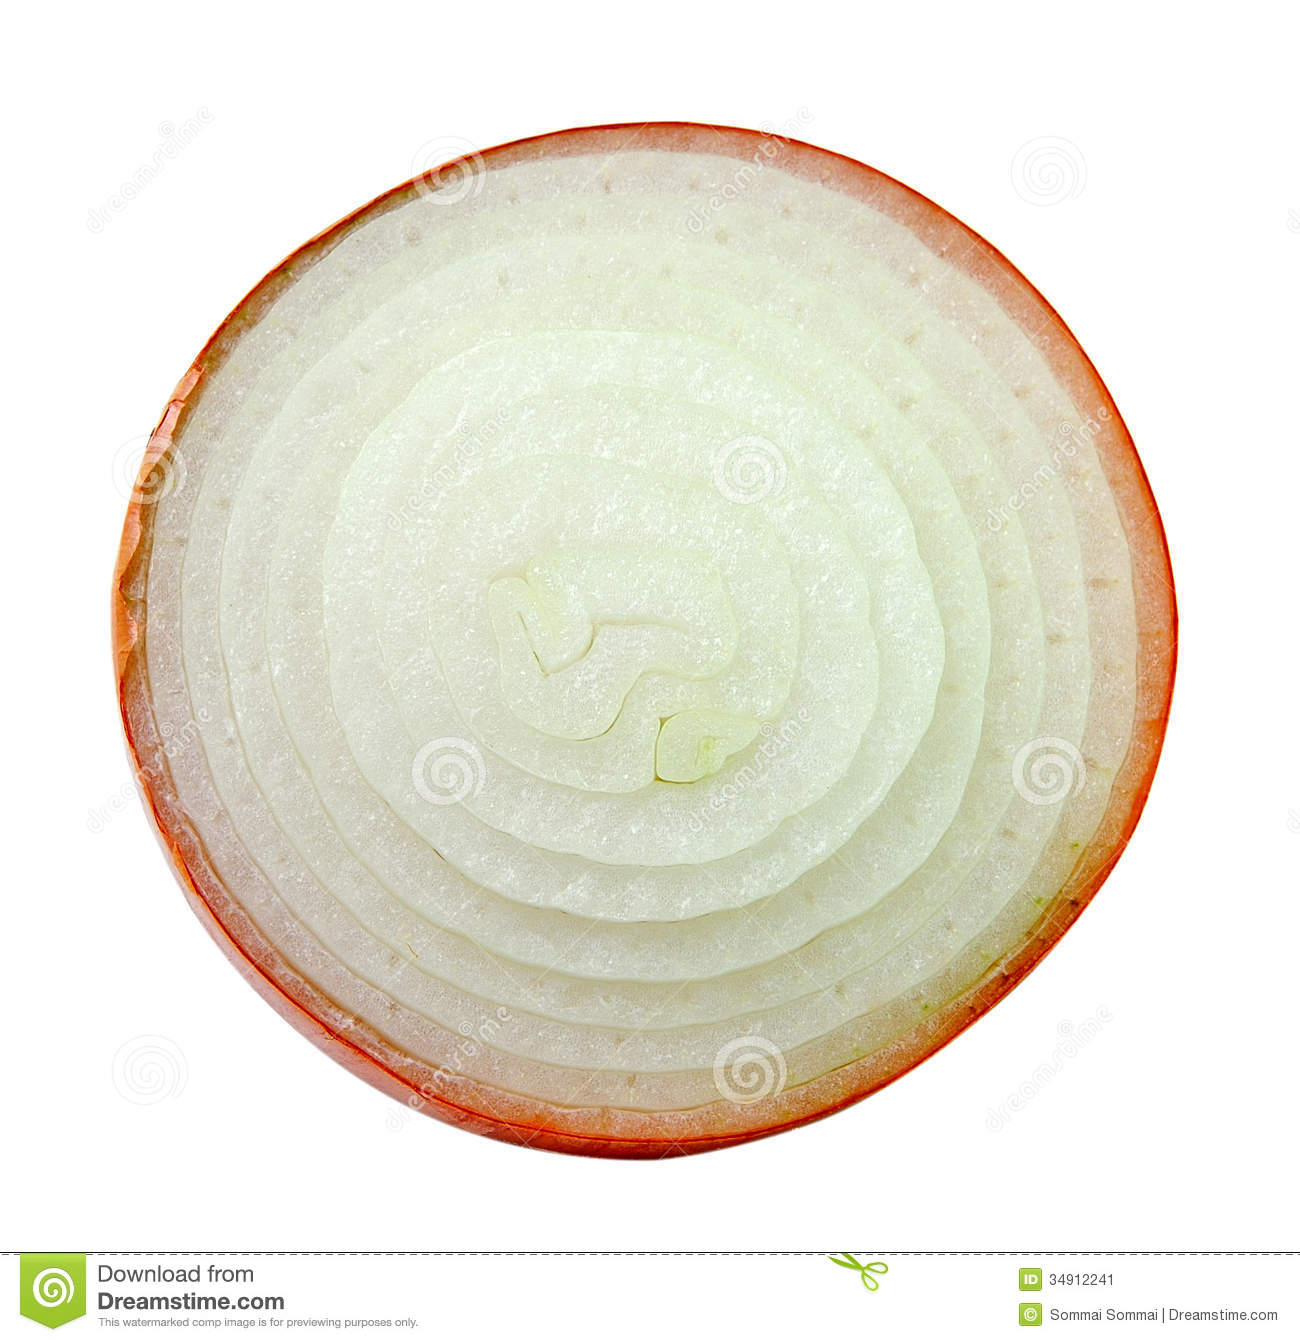 Sliced Onion On White Background Stock Image - Image: 34912241